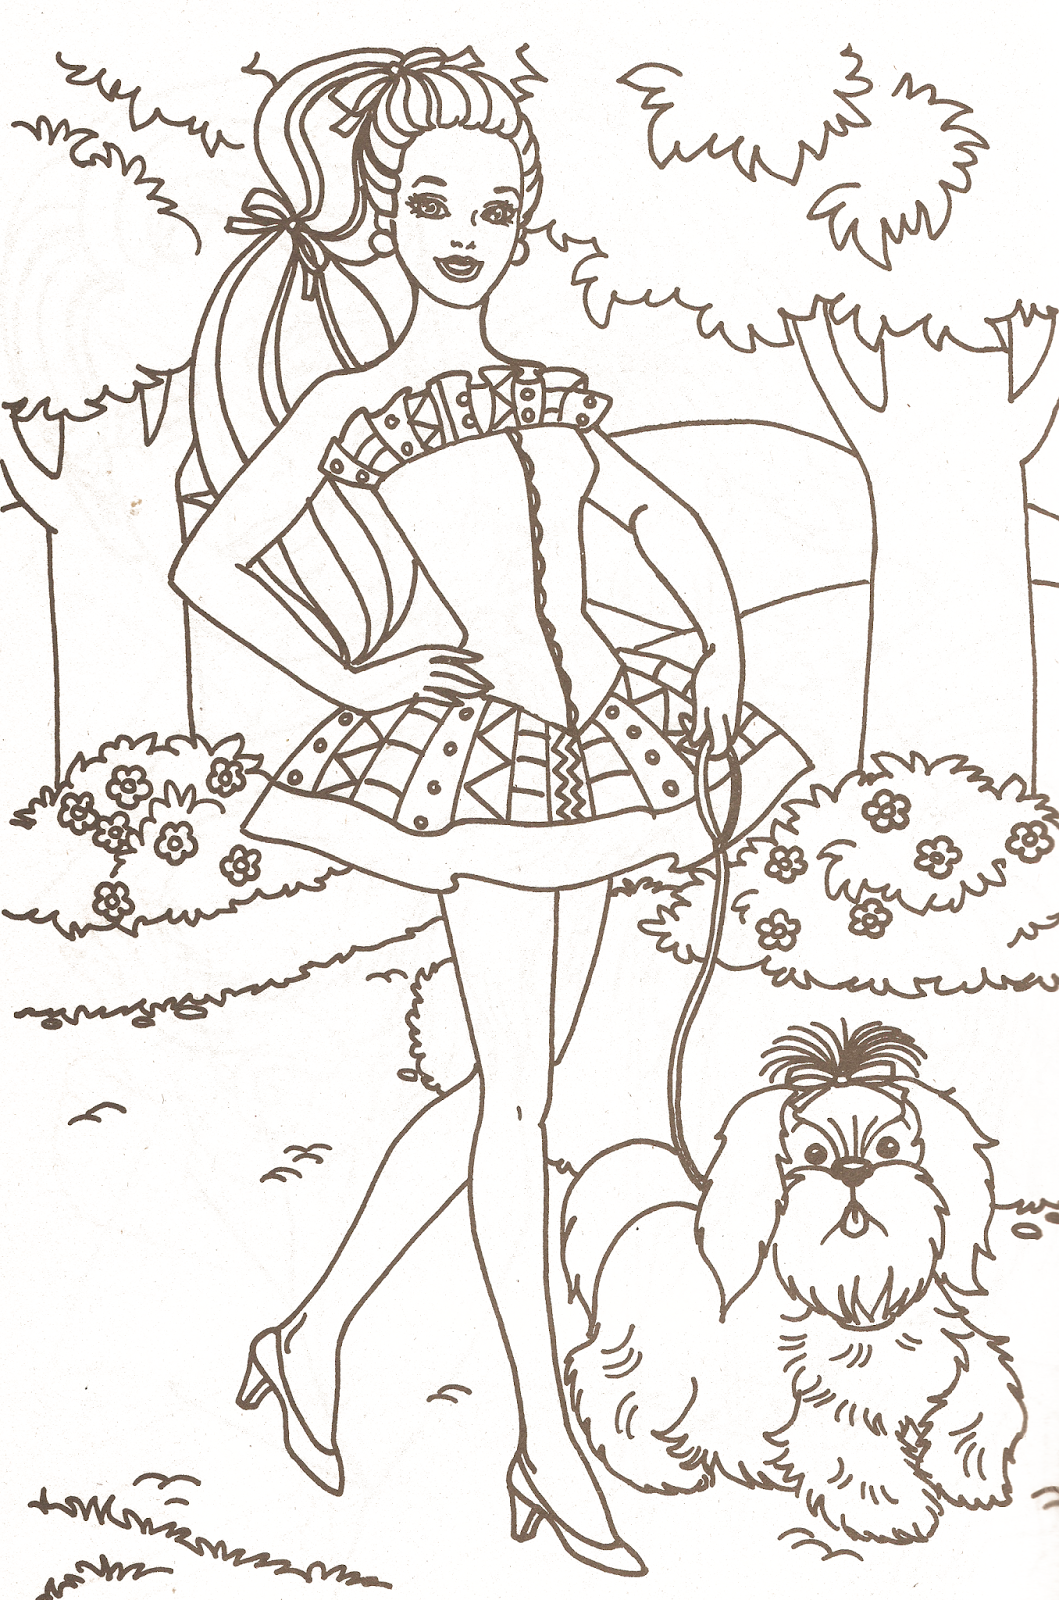 Barbie Coloring Pages Part 1 | Barbie coloring and Coloring books